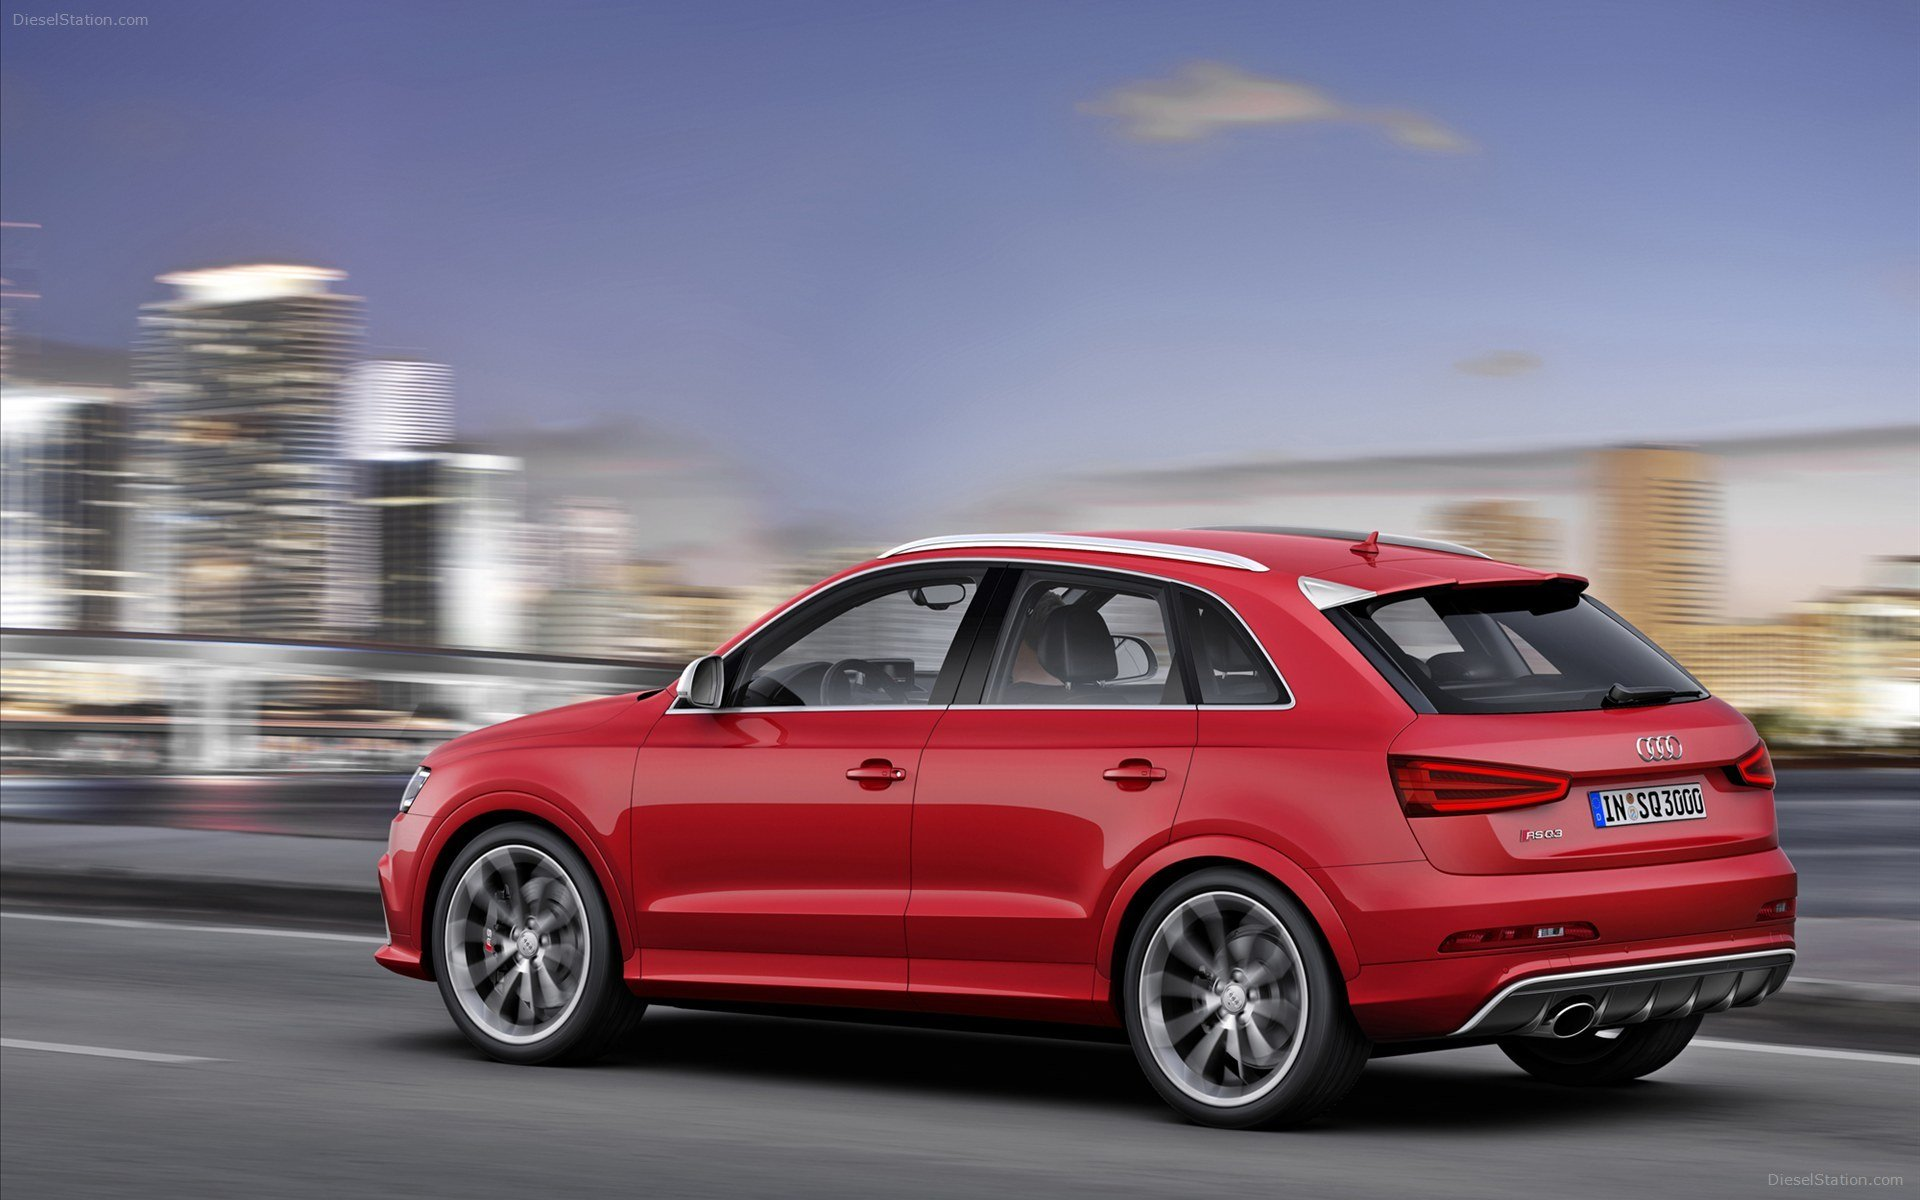 Latest Audi Rs Q3 2014 Widescreen Exotic Car Wallpapers 14 Of Free Download